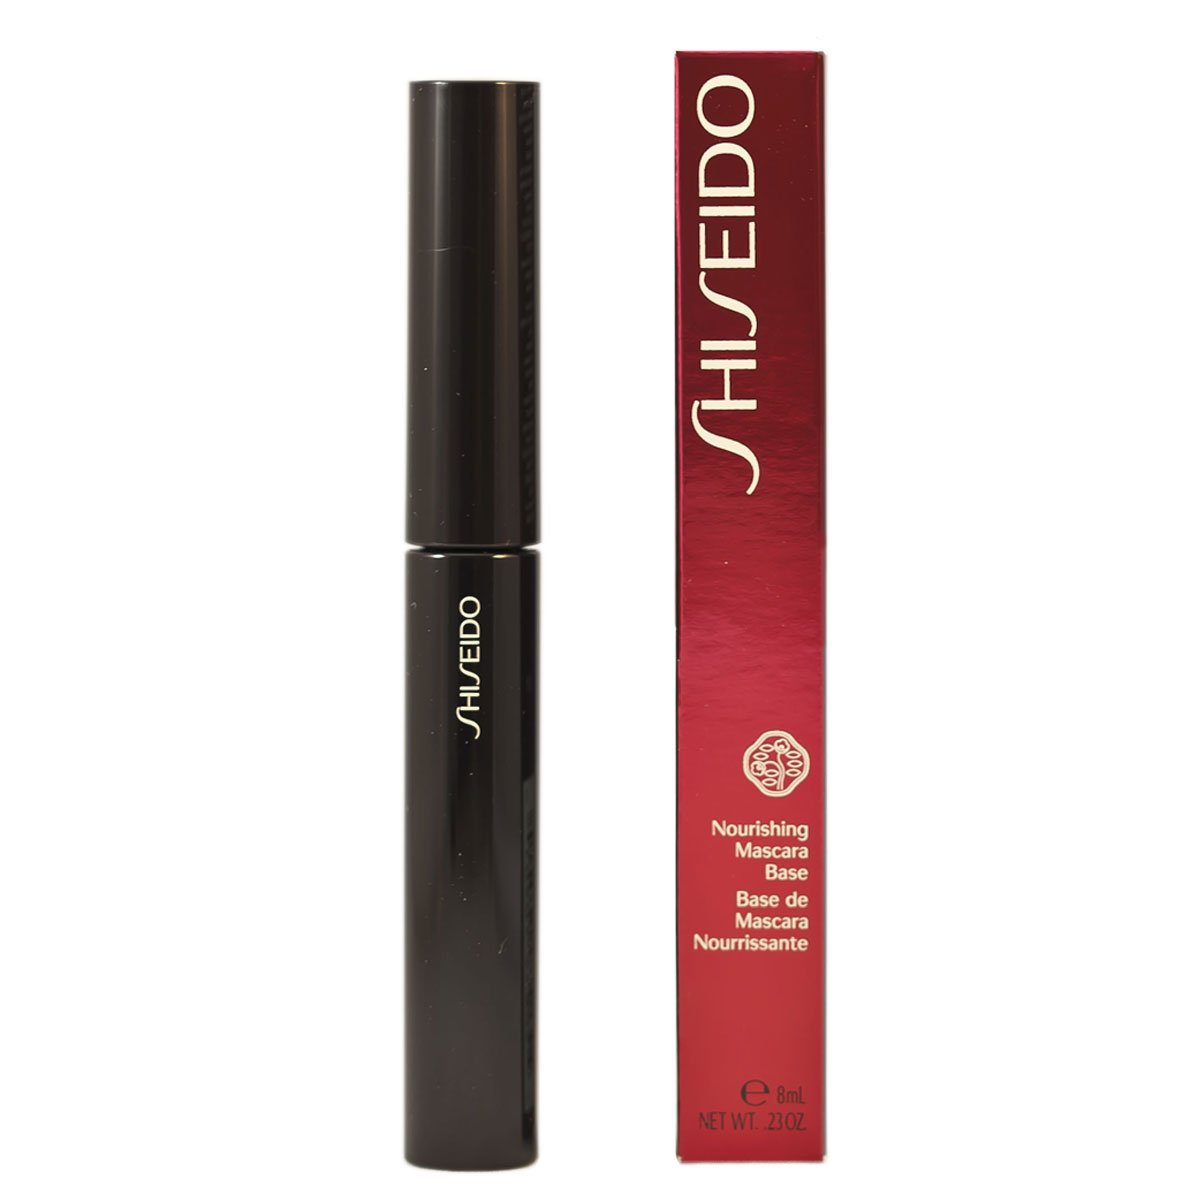 Shiseido Nourishing Mascara Base, 0.23 Ounce